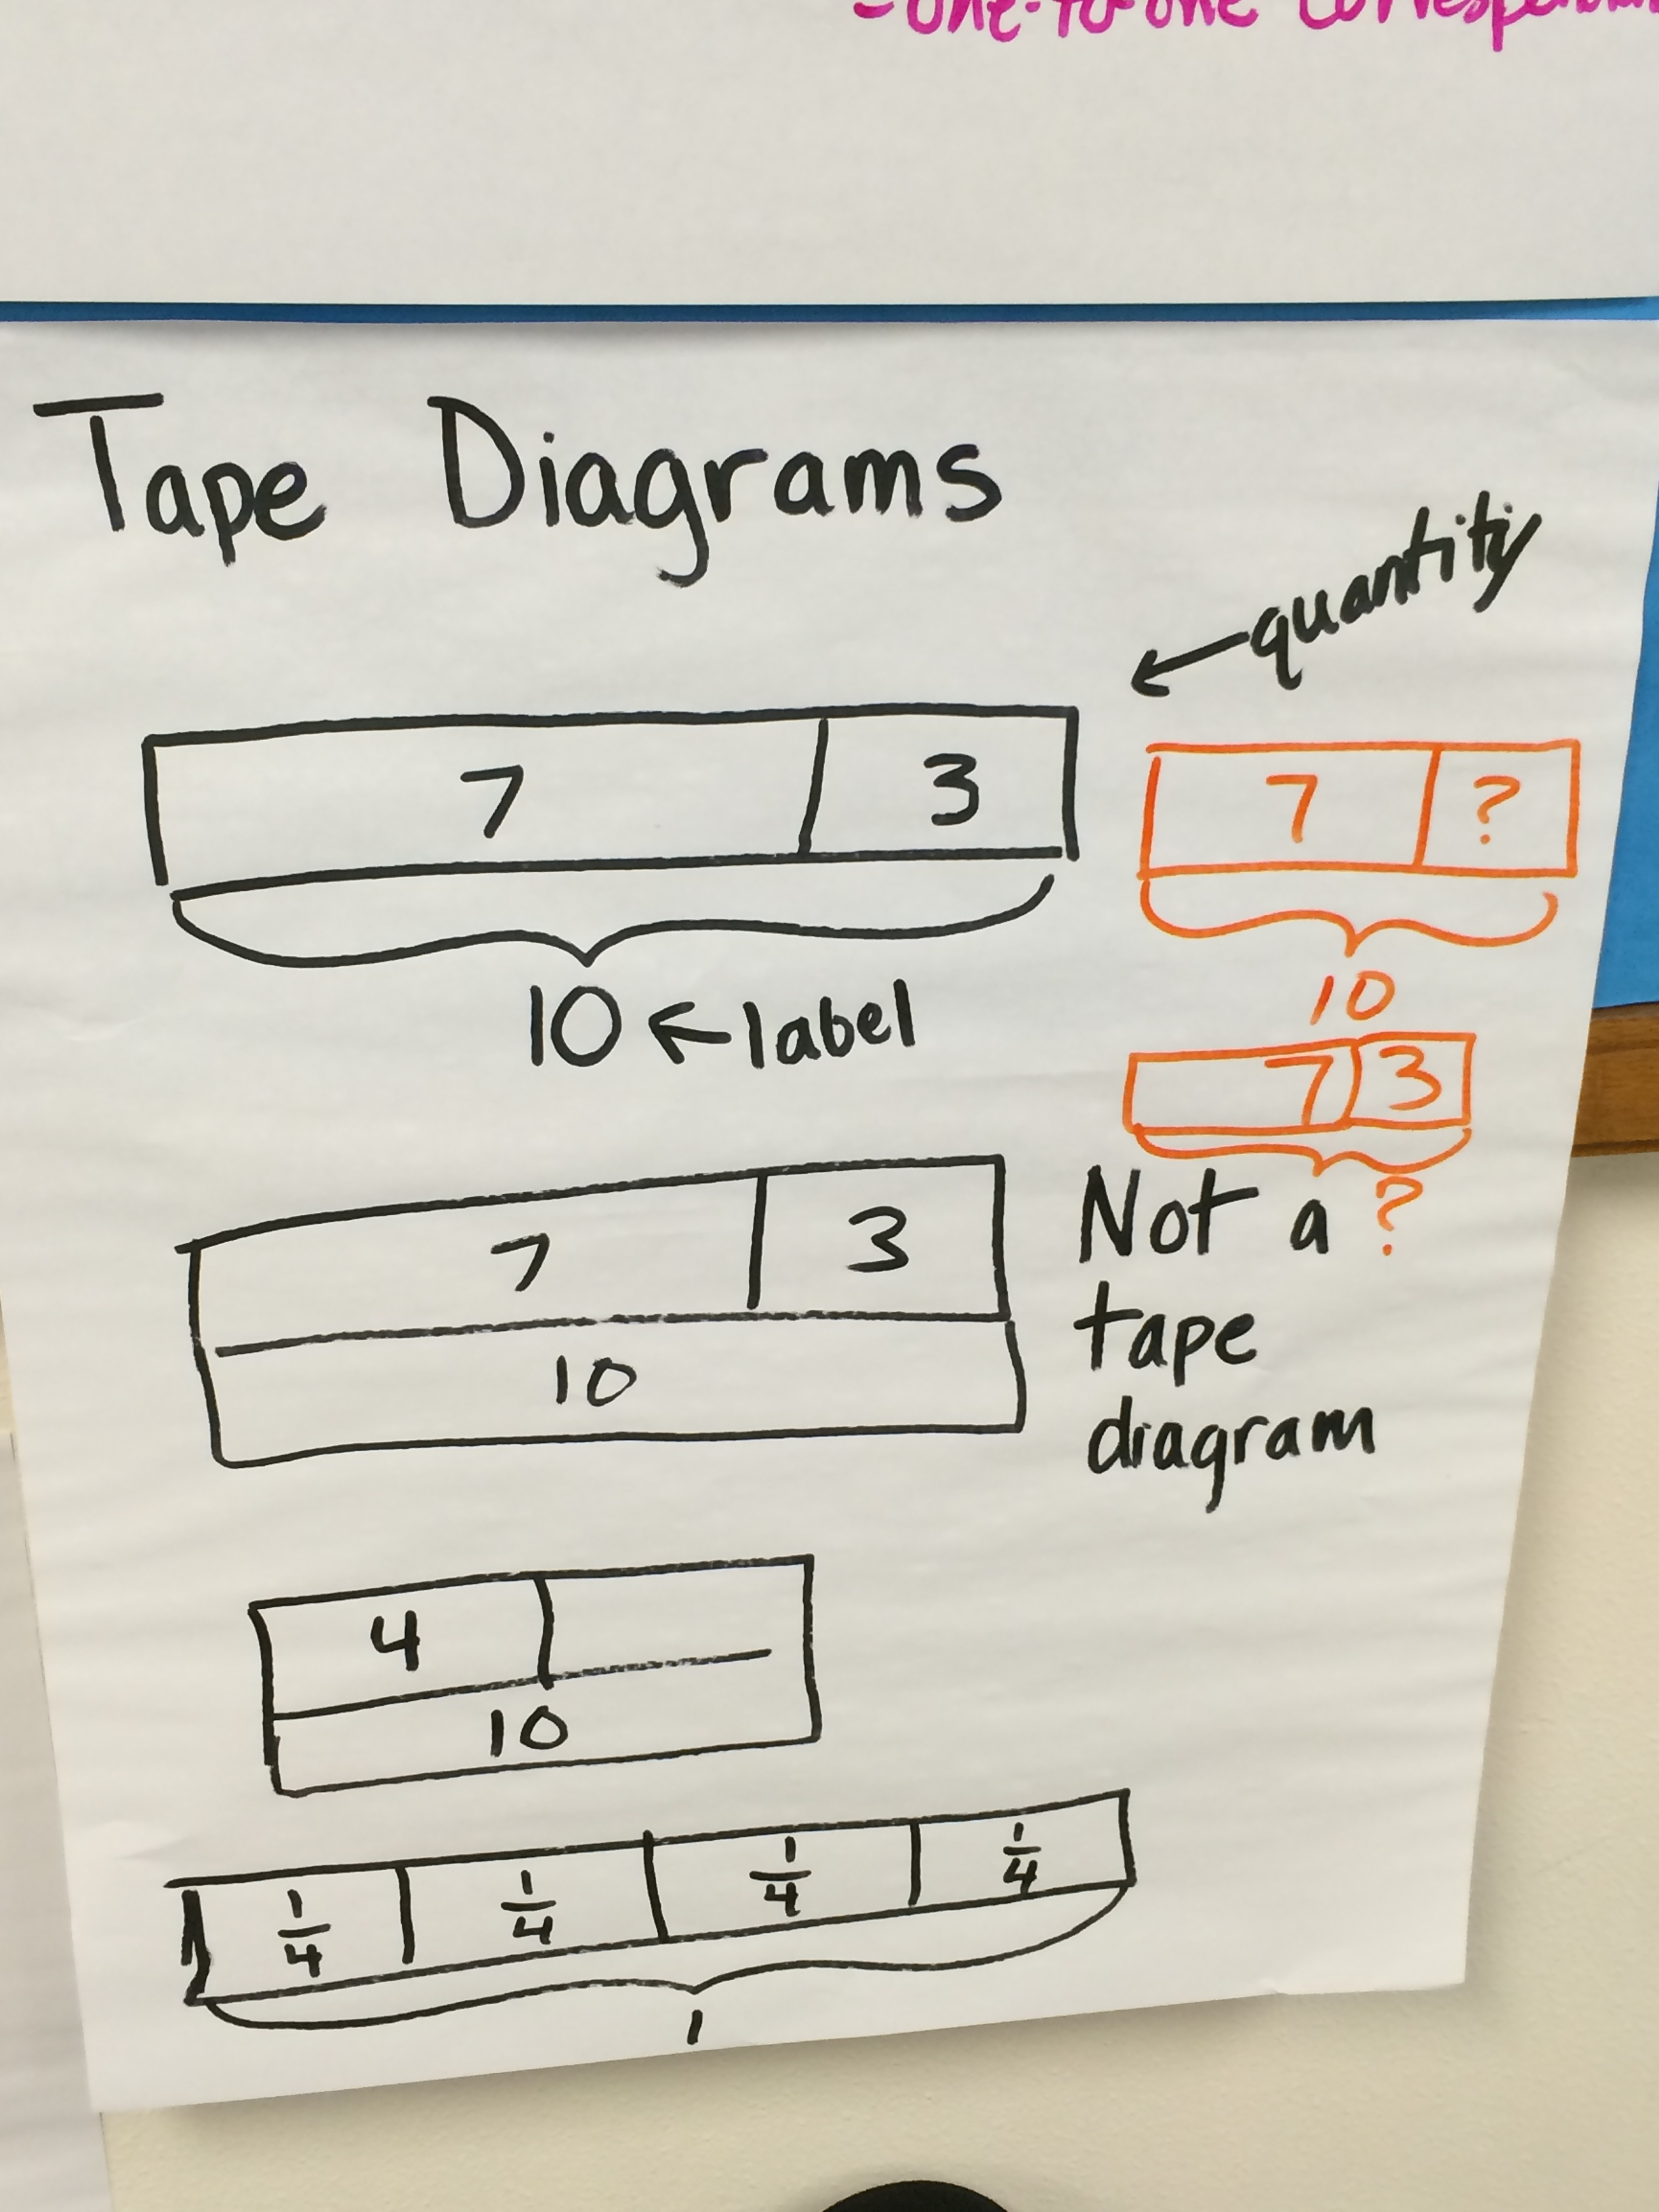 tape diagram 1st - wiring diagrams